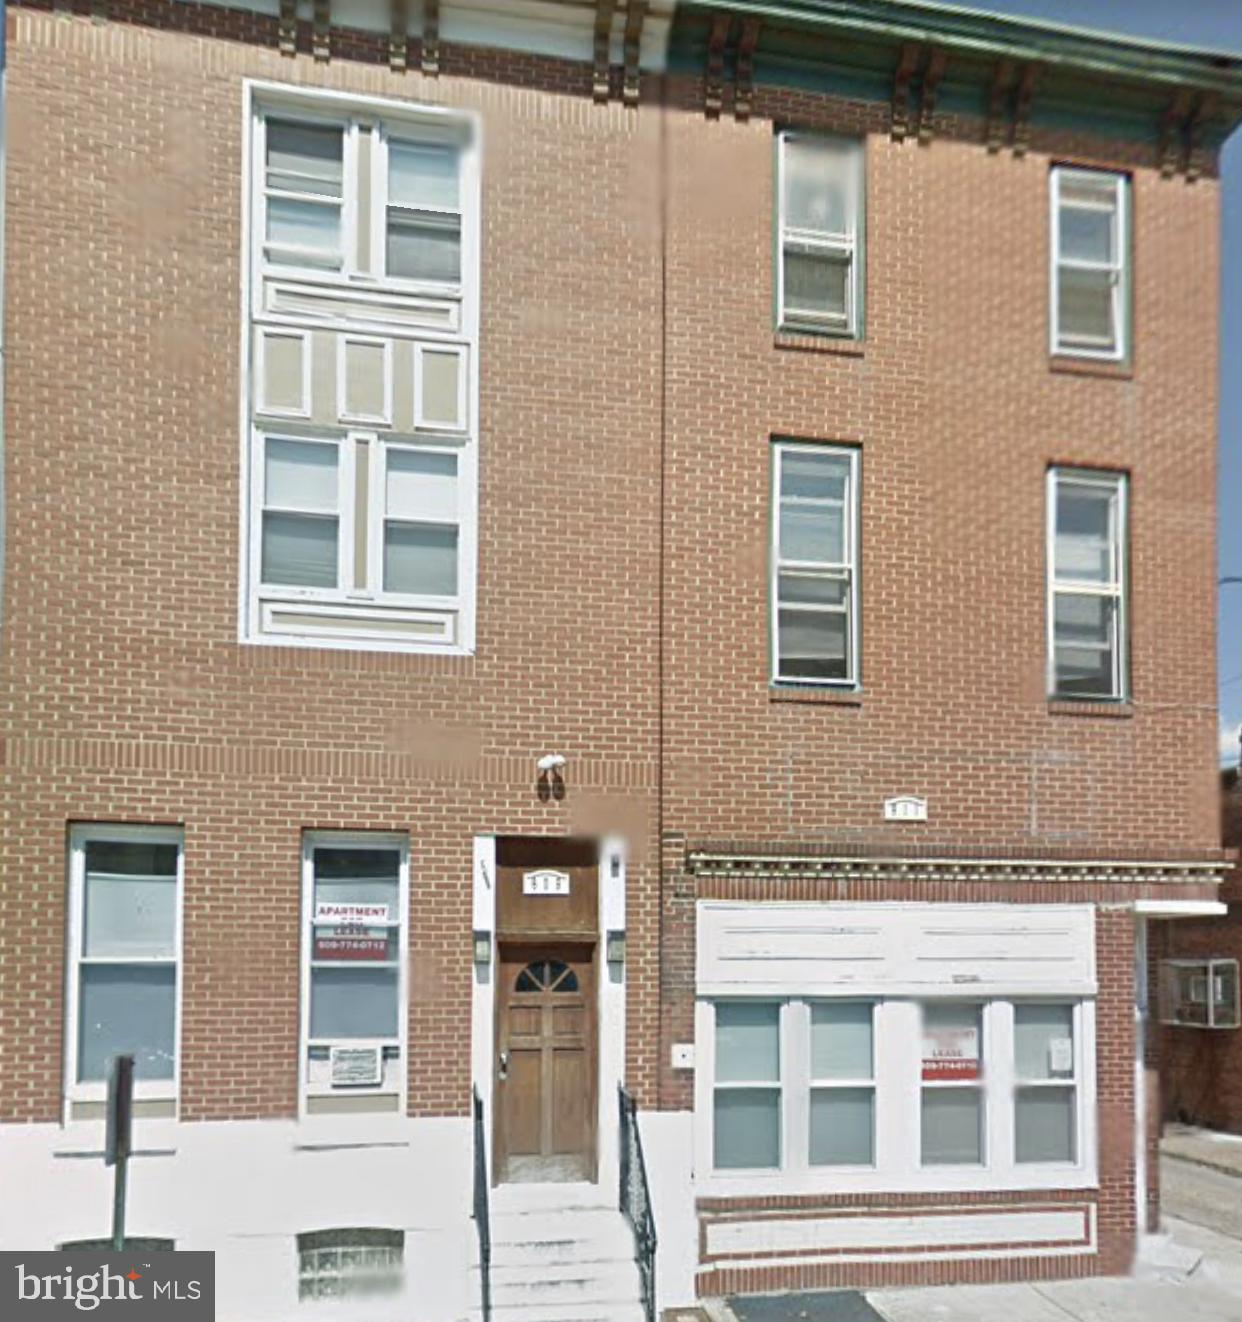 609 N 2ND STREET, CAMDEN, NJ 08102